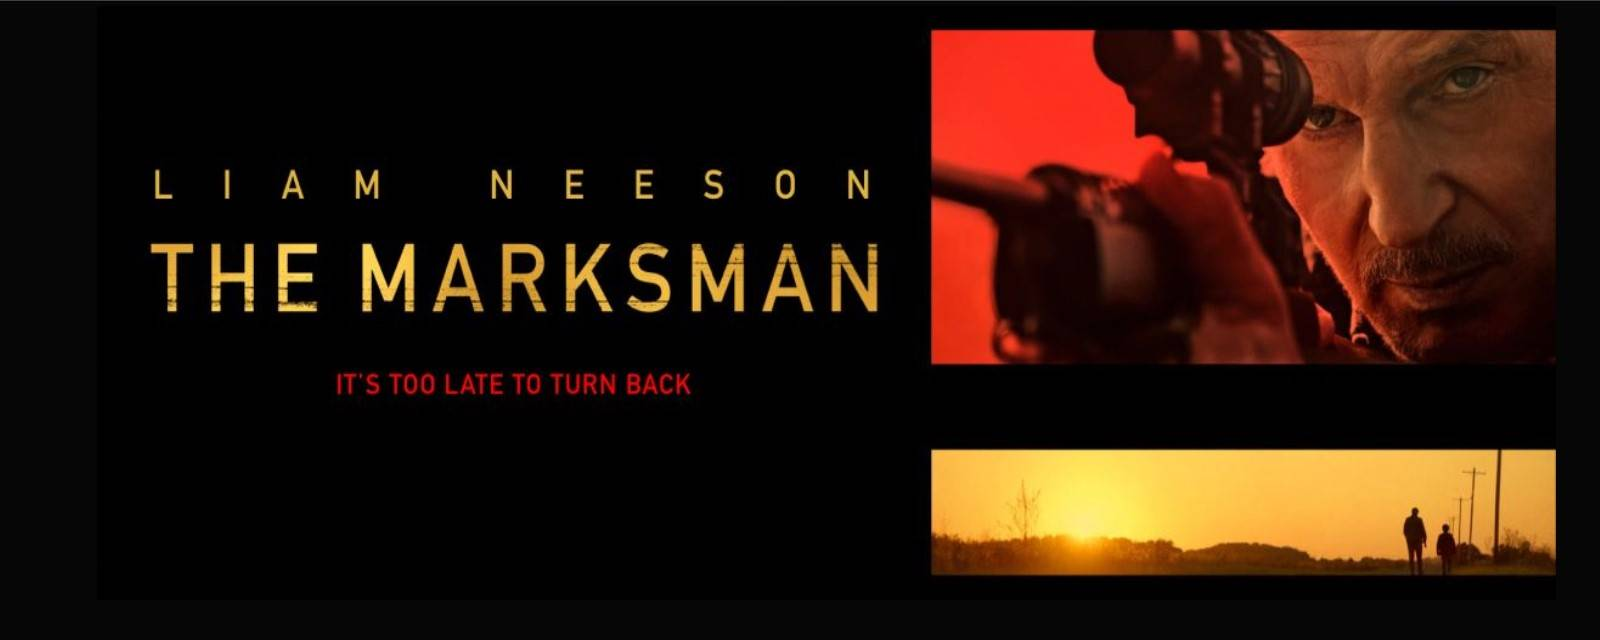 The Marksman (2021) image